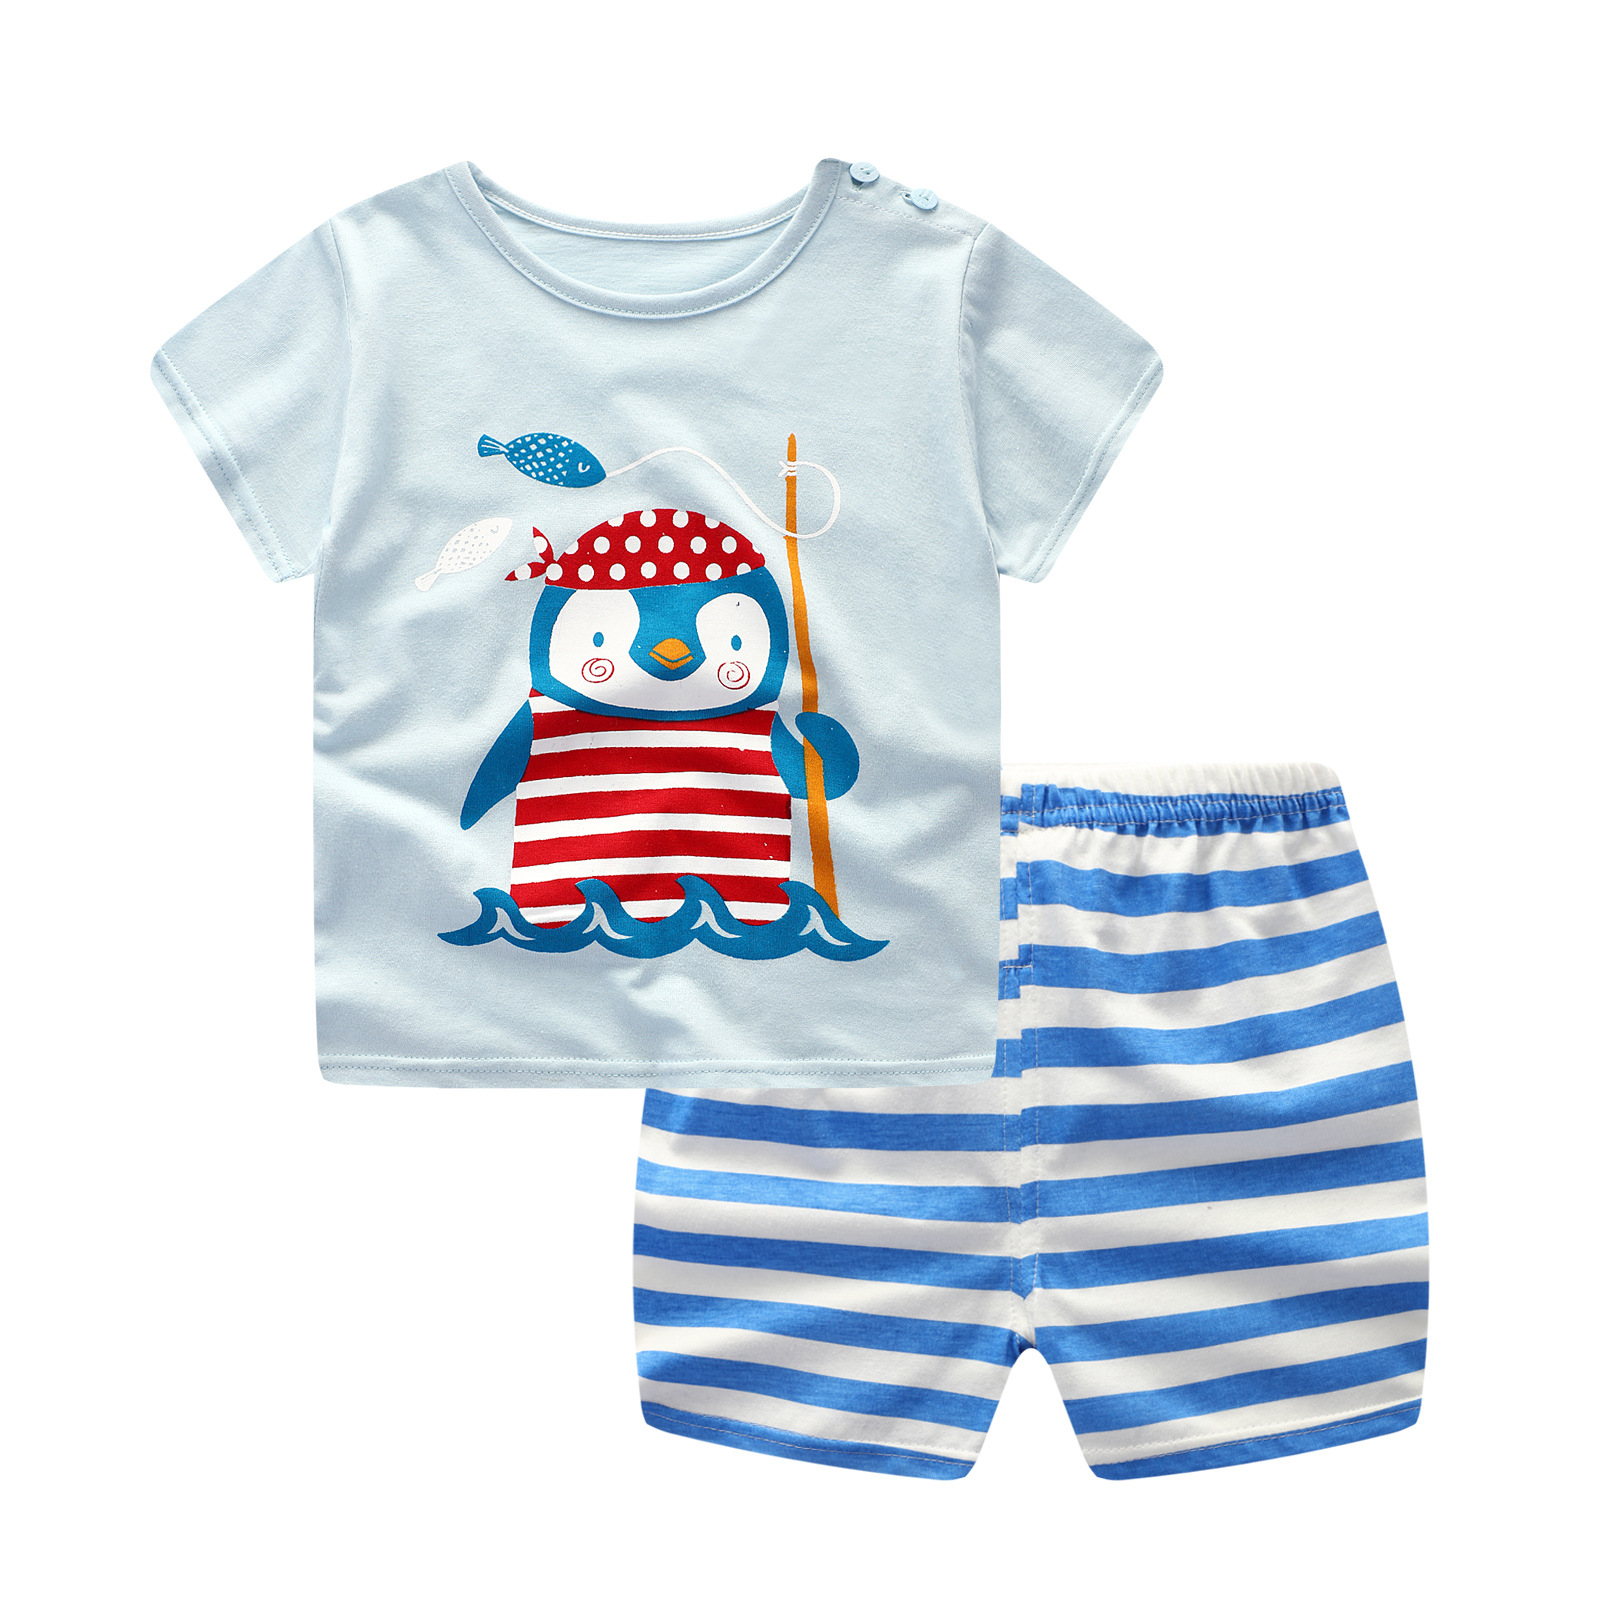 Toddler Boy Kids Clothes Lion Print Short Sleeve T-shirt + Shorts 2 Piece Set Baby Boy Girl Cloths Outfit Infant Clothing